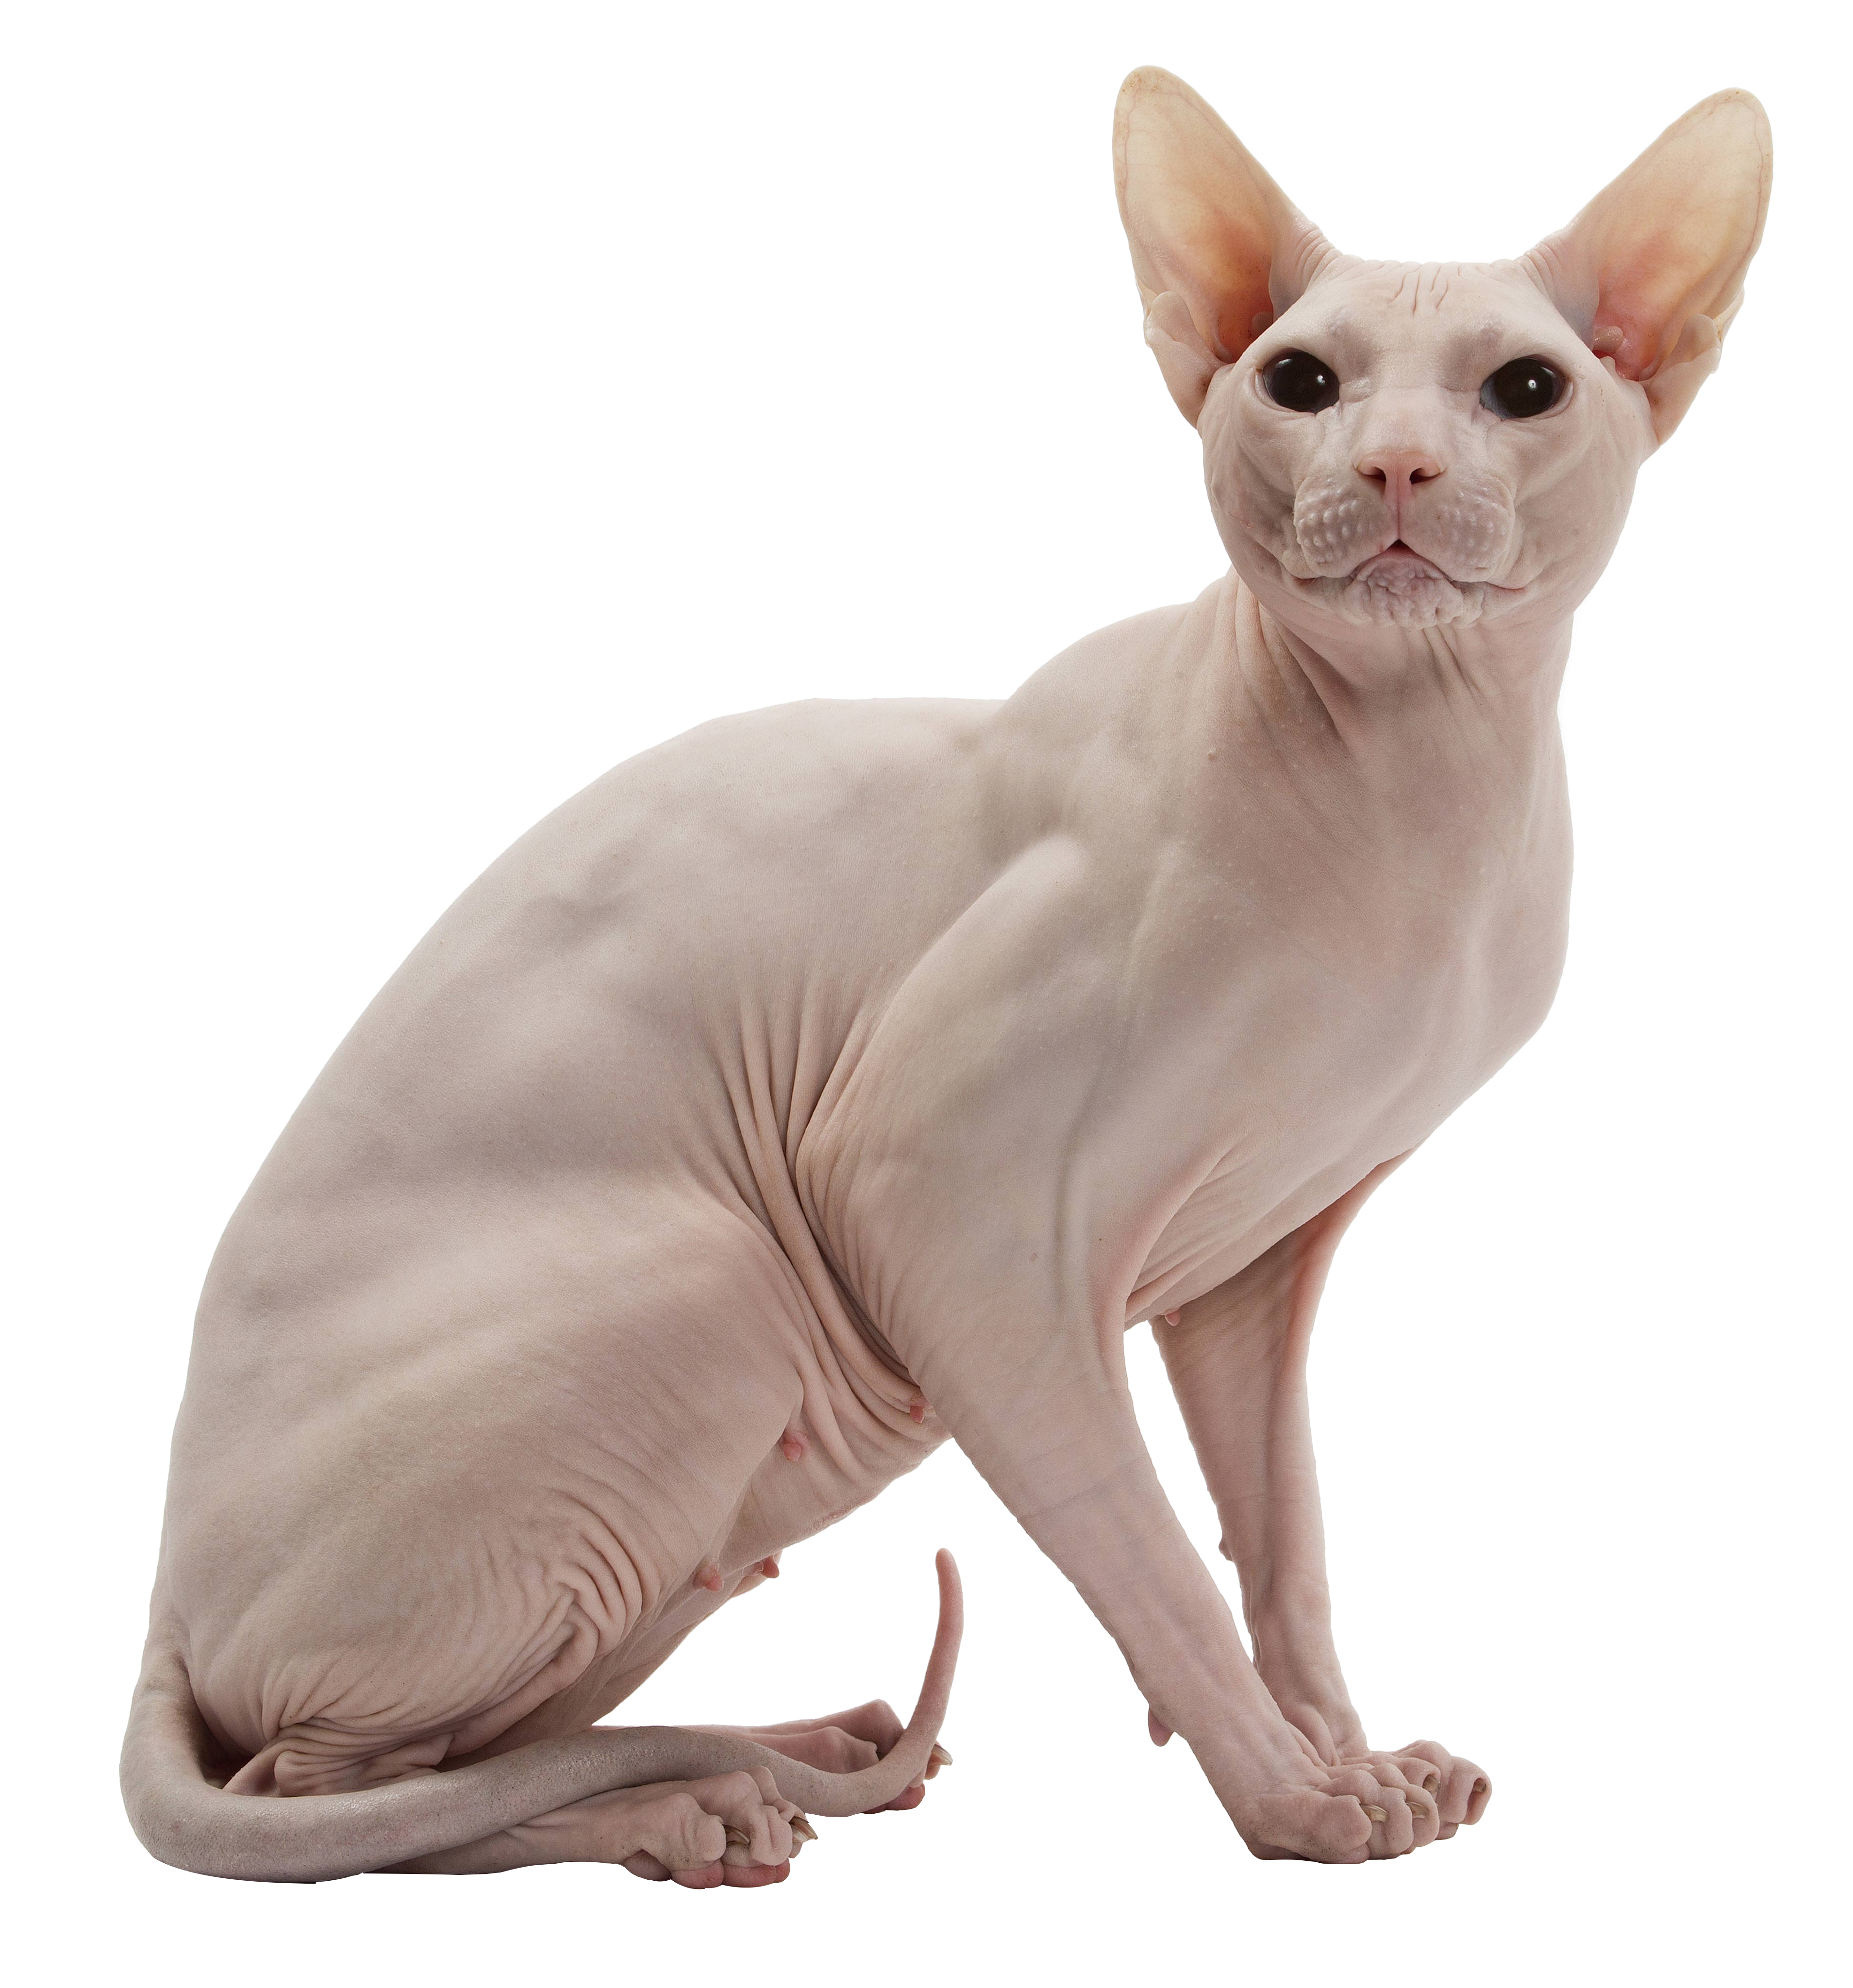 Pictures of sphynx cats clipart images gallery for free.